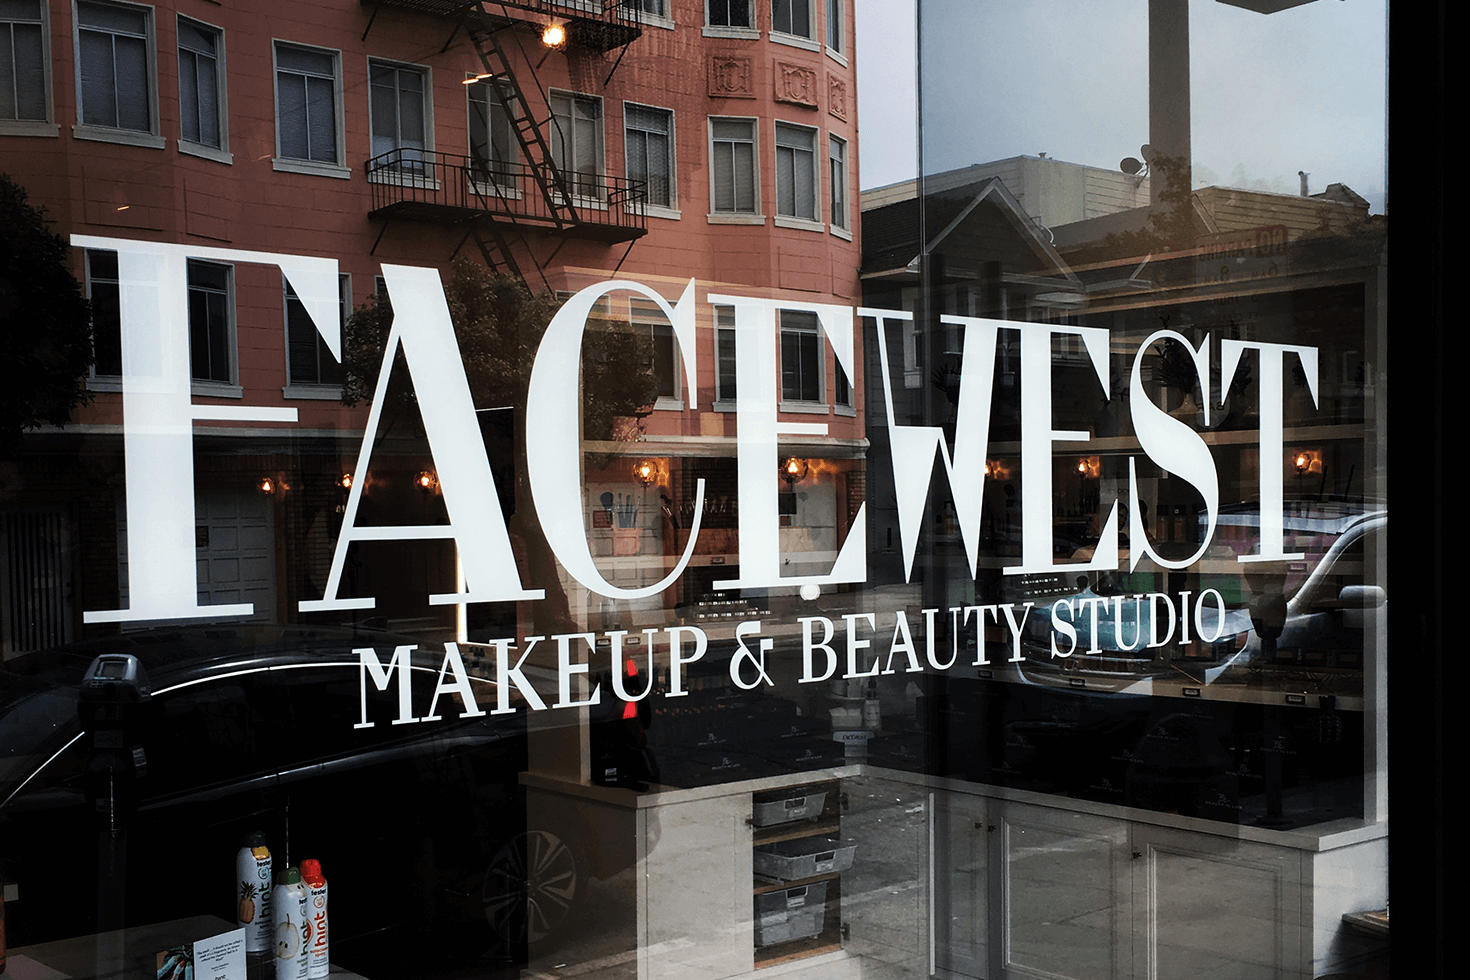 FaceWest window